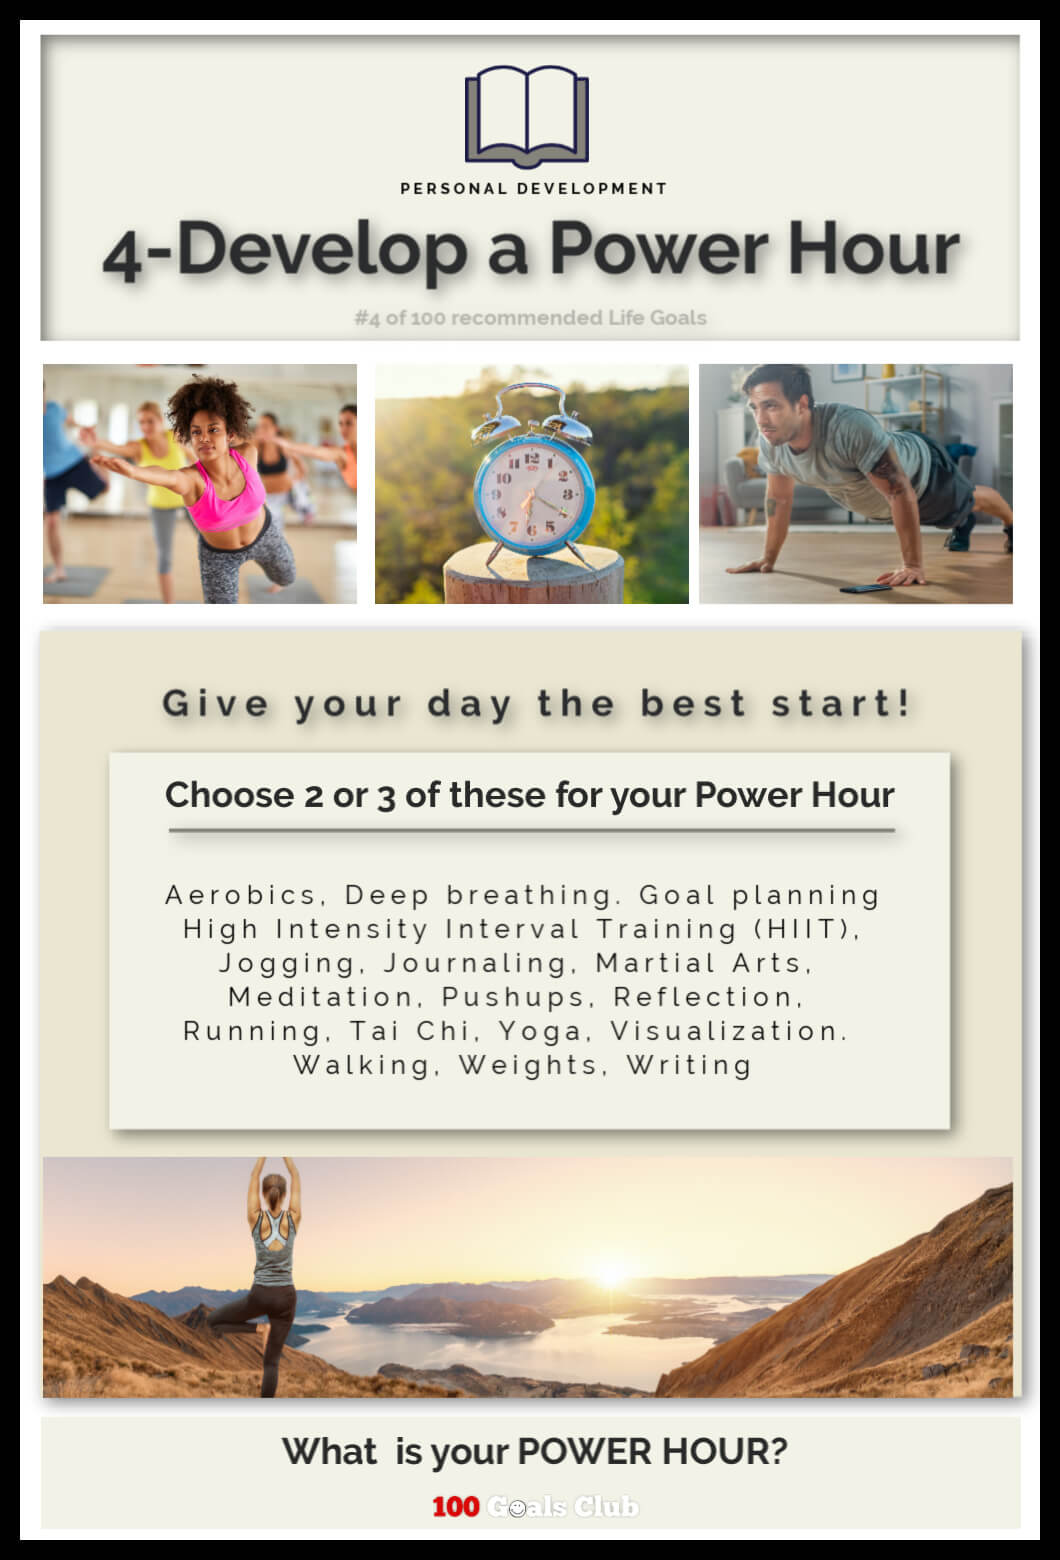 What is a power hour?